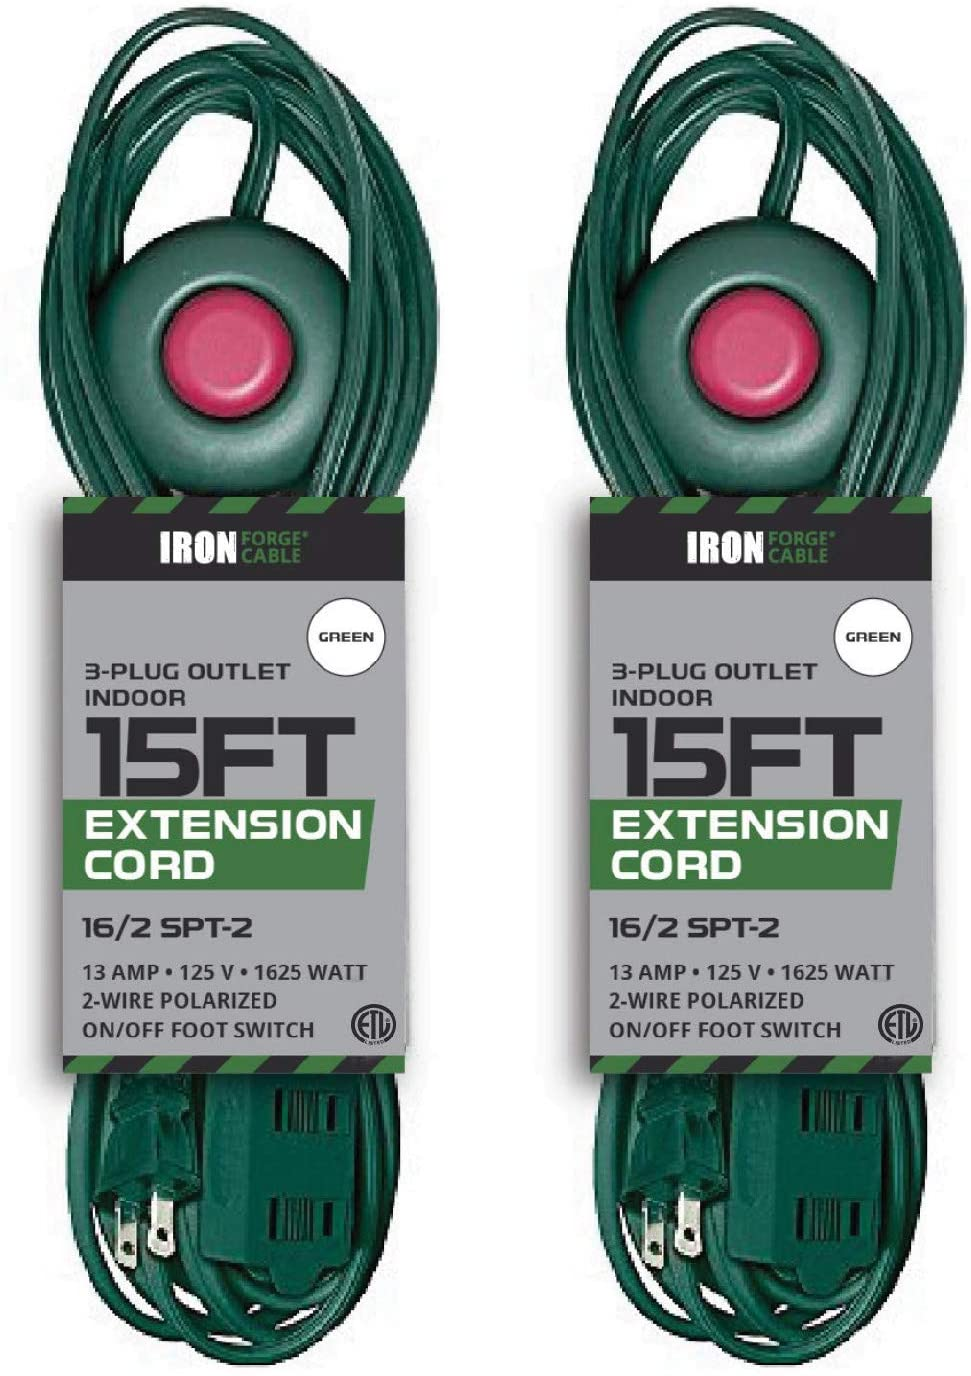 2 Pack of 15 Ft Extension Cord with Foot Switch and 3 Electrical Power Outlets - 16/2 Durable Green Foot Tap Cable Set - Great for Powering Outdoor Christmas Decorations